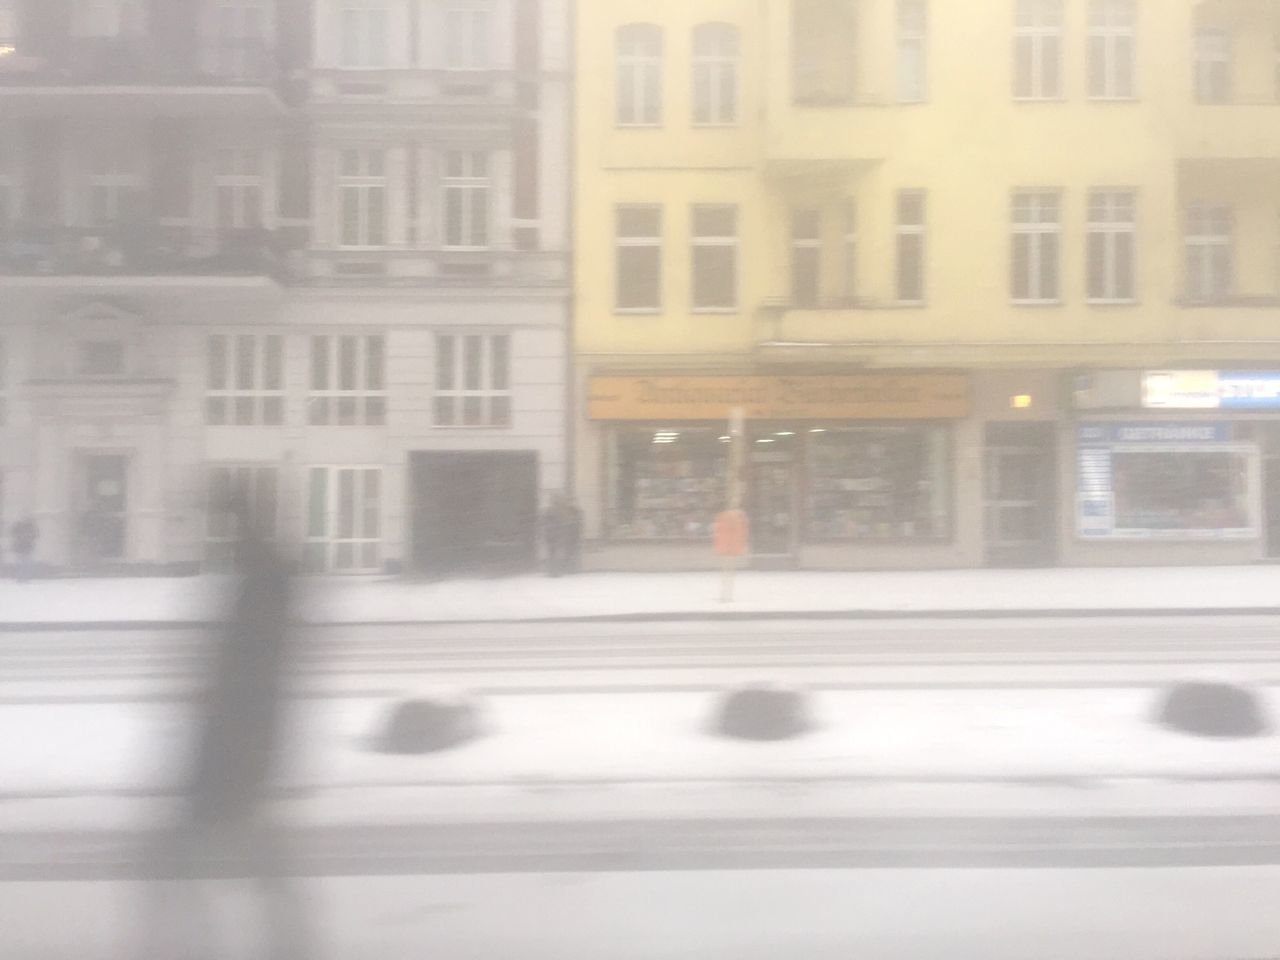 weather, window, street, winter, cold temperature, transportation, outdoors, building exterior, architecture, road, day, snow, no people, city, nature